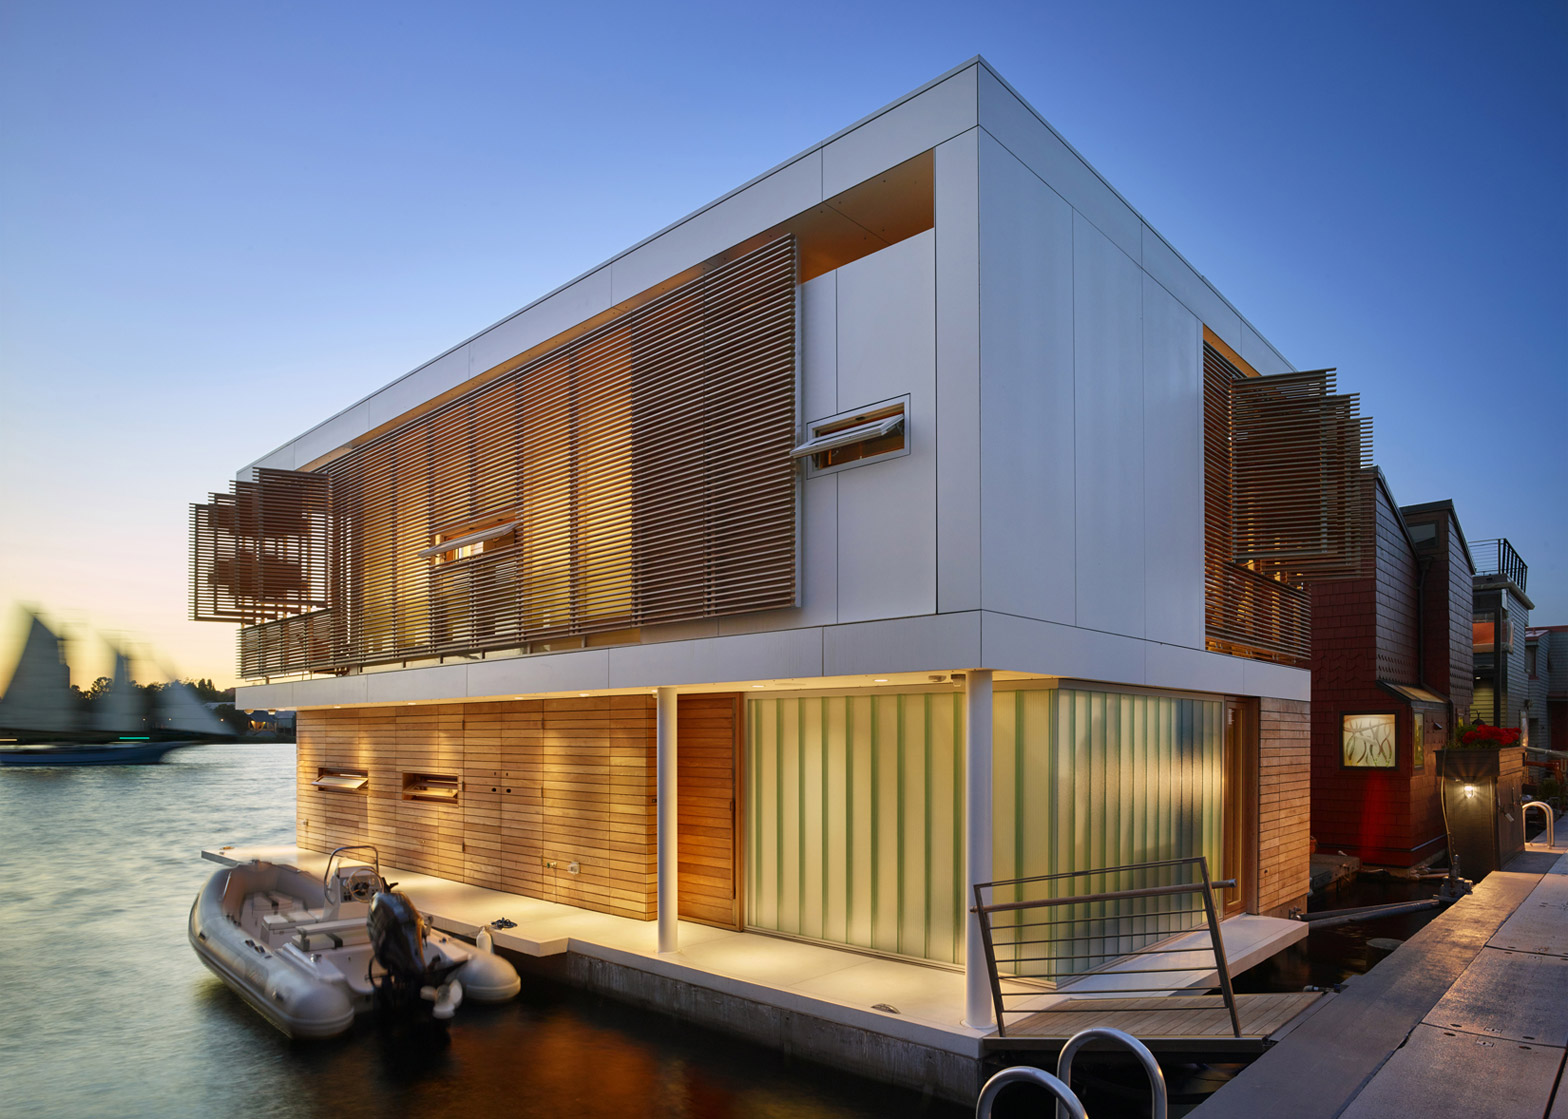 Outstanding Floating Home In Seattle Features Water Level Bedrooms Download Free Architecture Designs Intelgarnamadebymaigaardcom